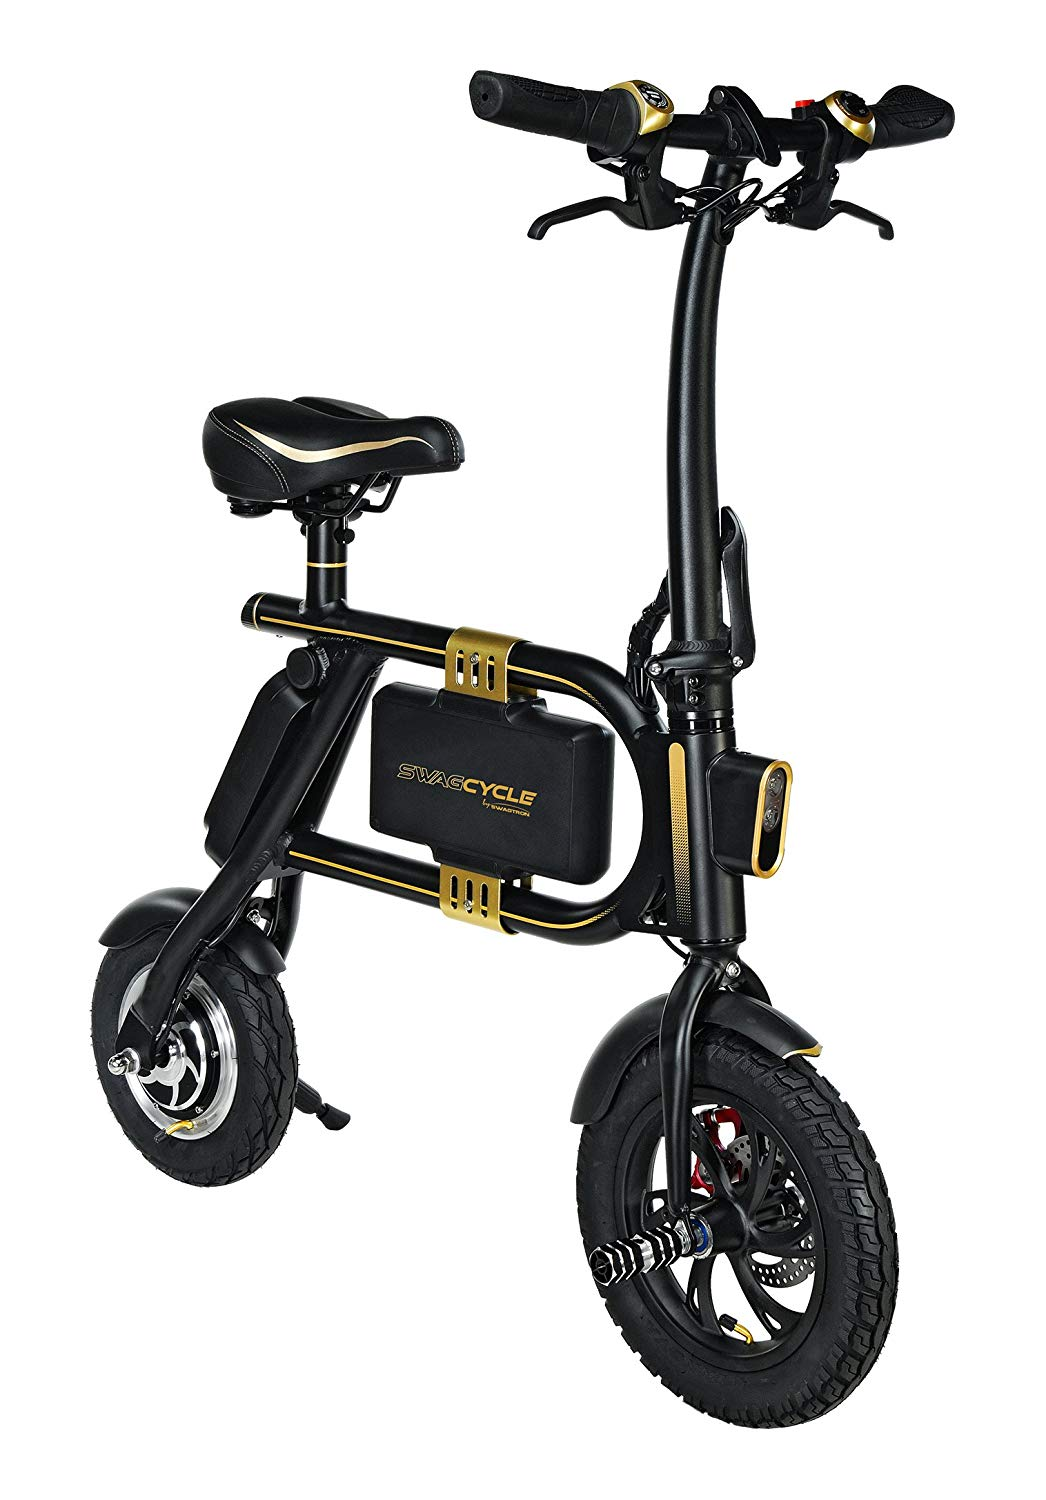 swacycle side view